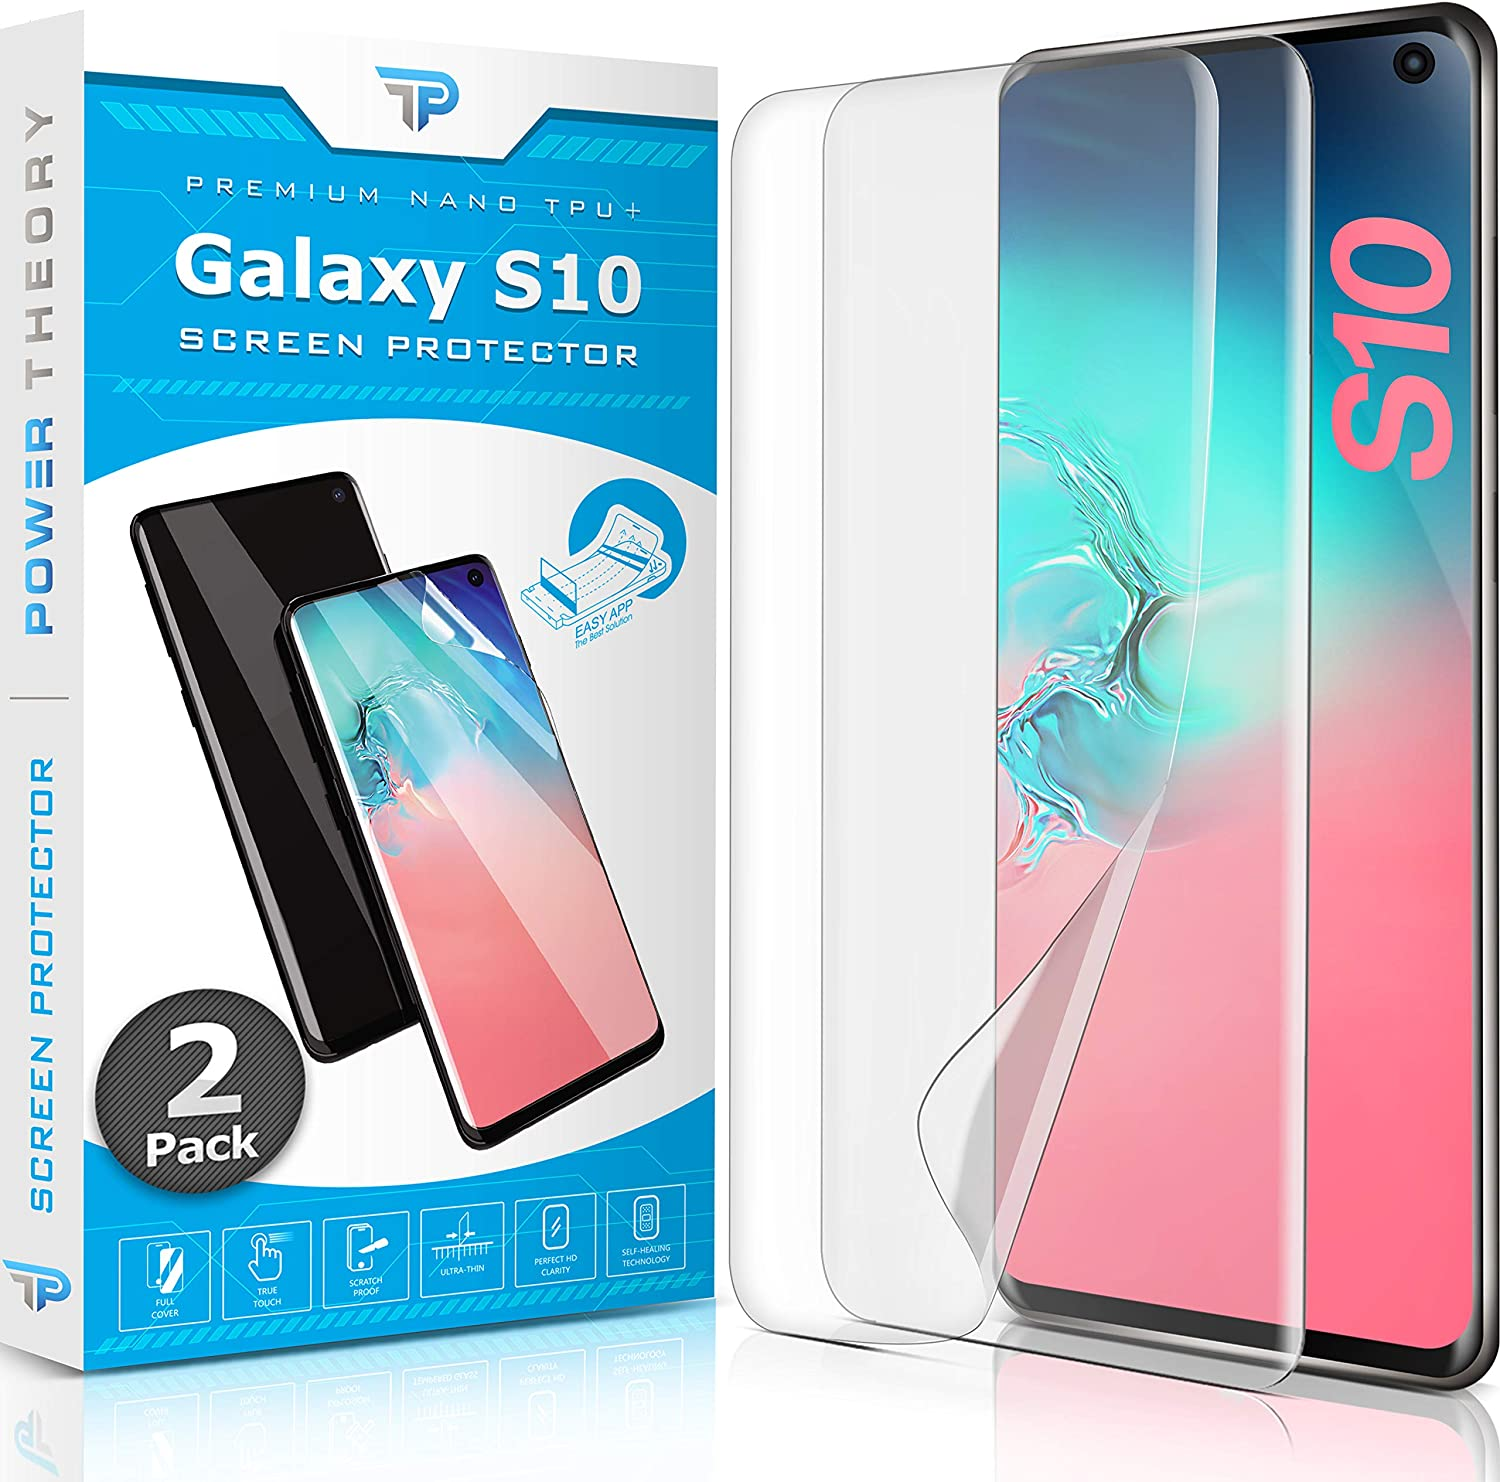 Power Theory Screen Protector Film for Samsung Galaxy S10 [2-pack] - [Not Glass] Full Cover, Case Friendly, Flexible Anti-Scratch Film